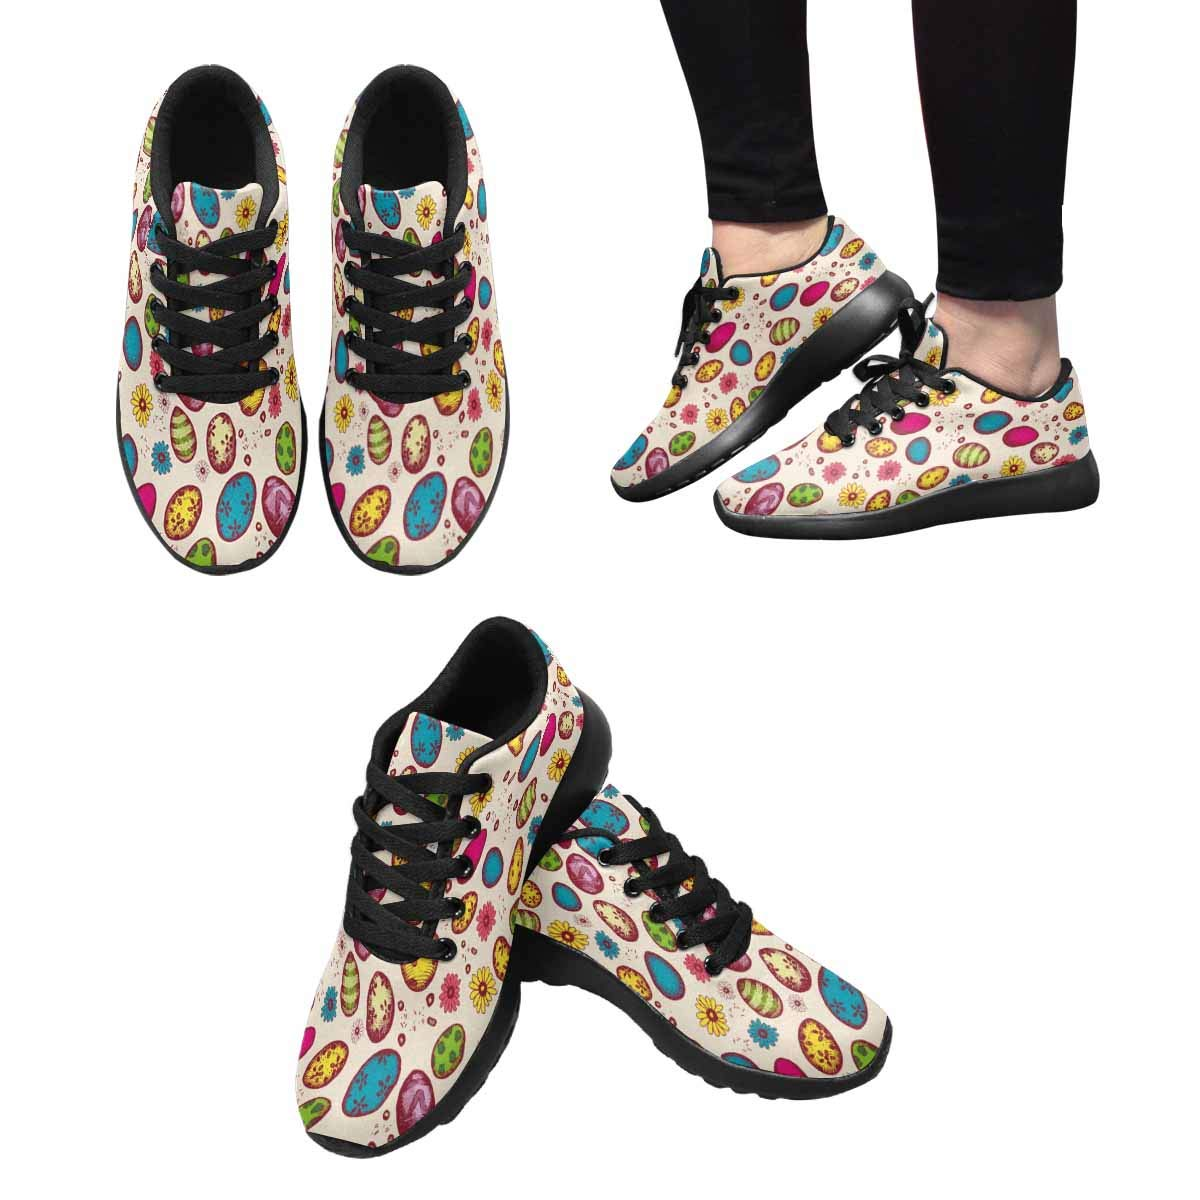 INTERESTPRINT Womens Running Shoes Lightweight Sneakers Athletic Tennis Sport Shoes Easter Bright Eggs